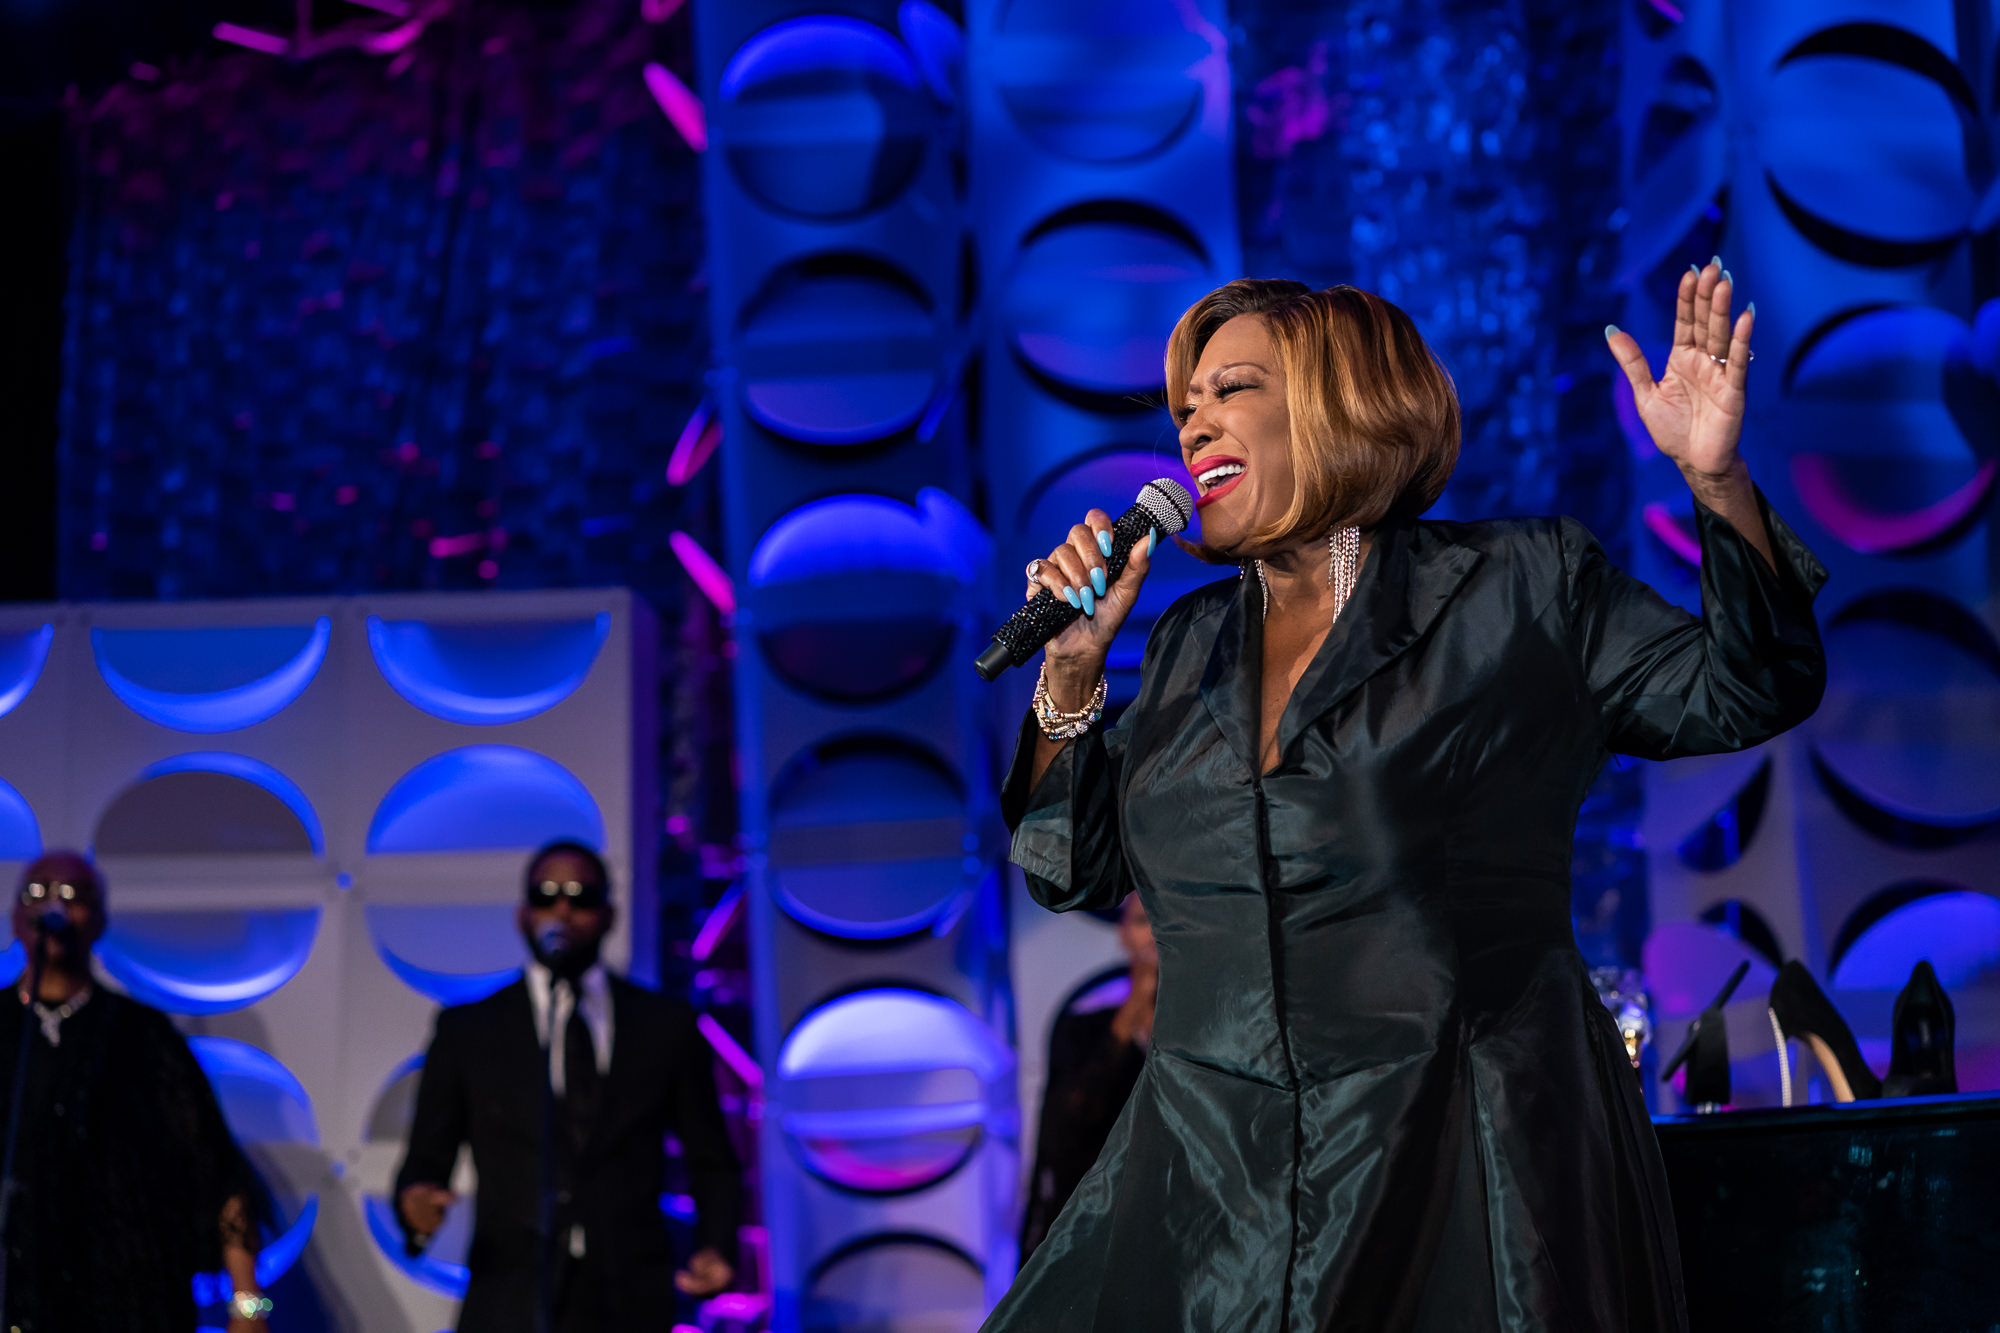 003-Christopher-Jason-Studios-marriott-grand-marquis-hotel-Executive-leadsership-council-washington-dc-event-photography-patti-labelle-performs-on-stage-for-guests.jpg